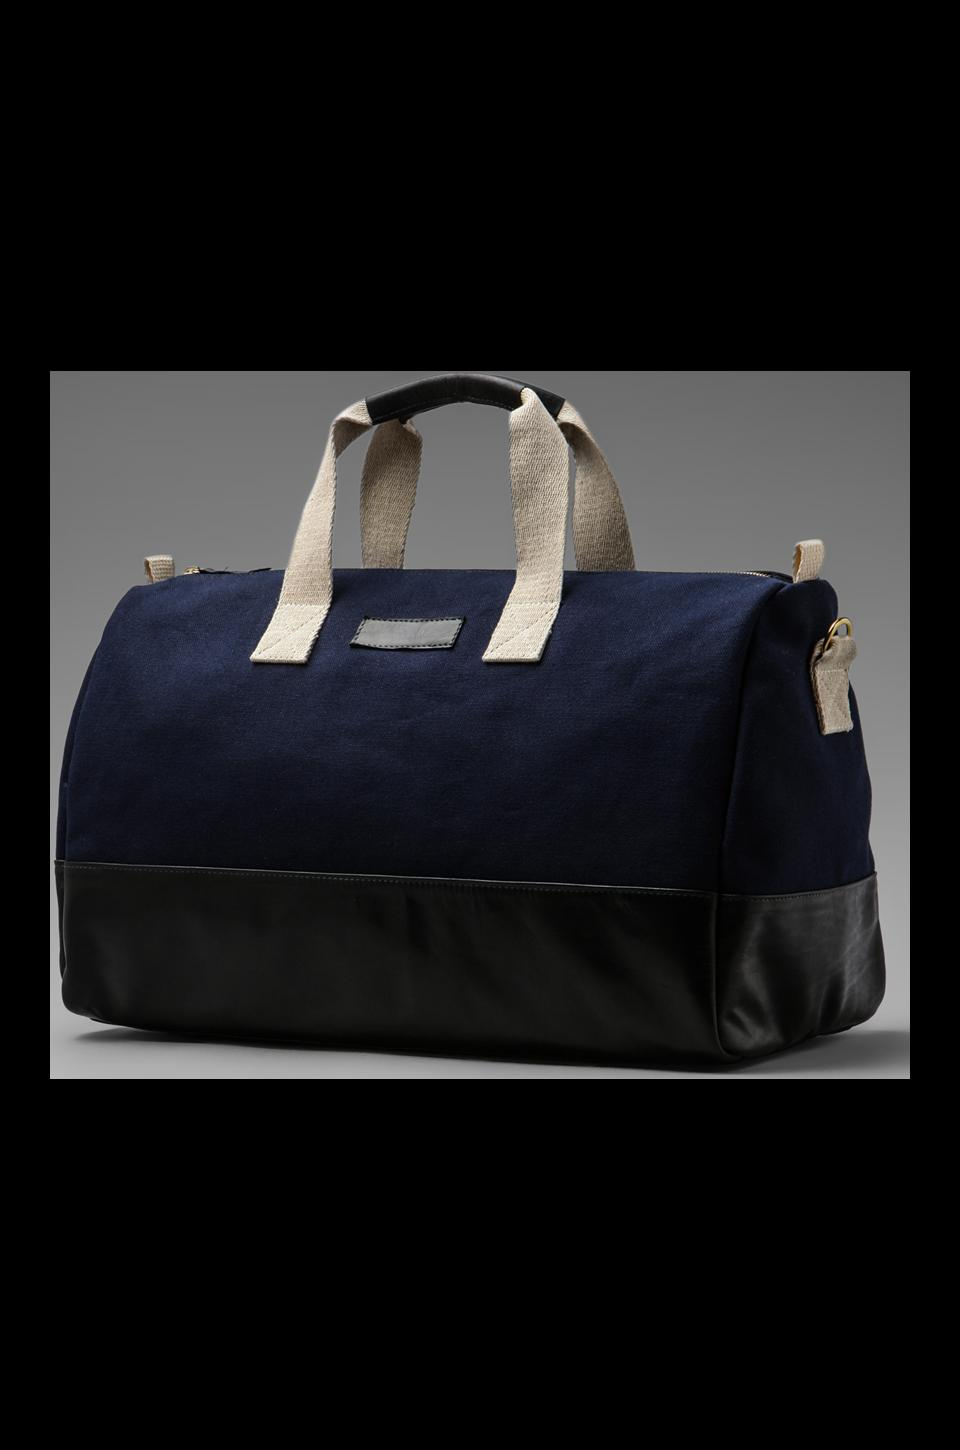 Clare V. Adam Duffle in Blue Canvas/Sanguine New Look